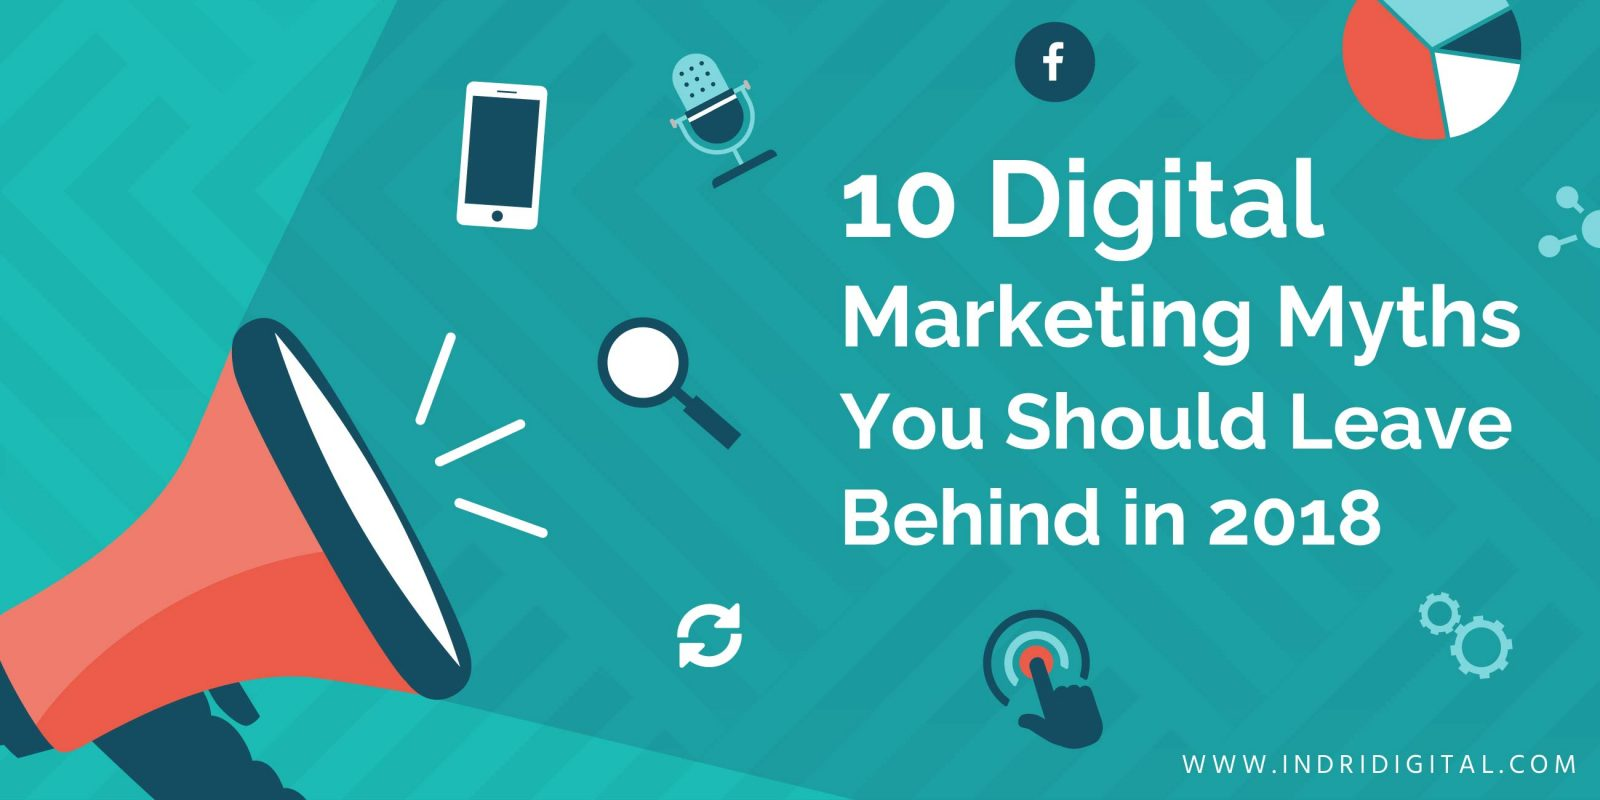 10 Digital Marketing Myths You Should Leave Behind in 2018